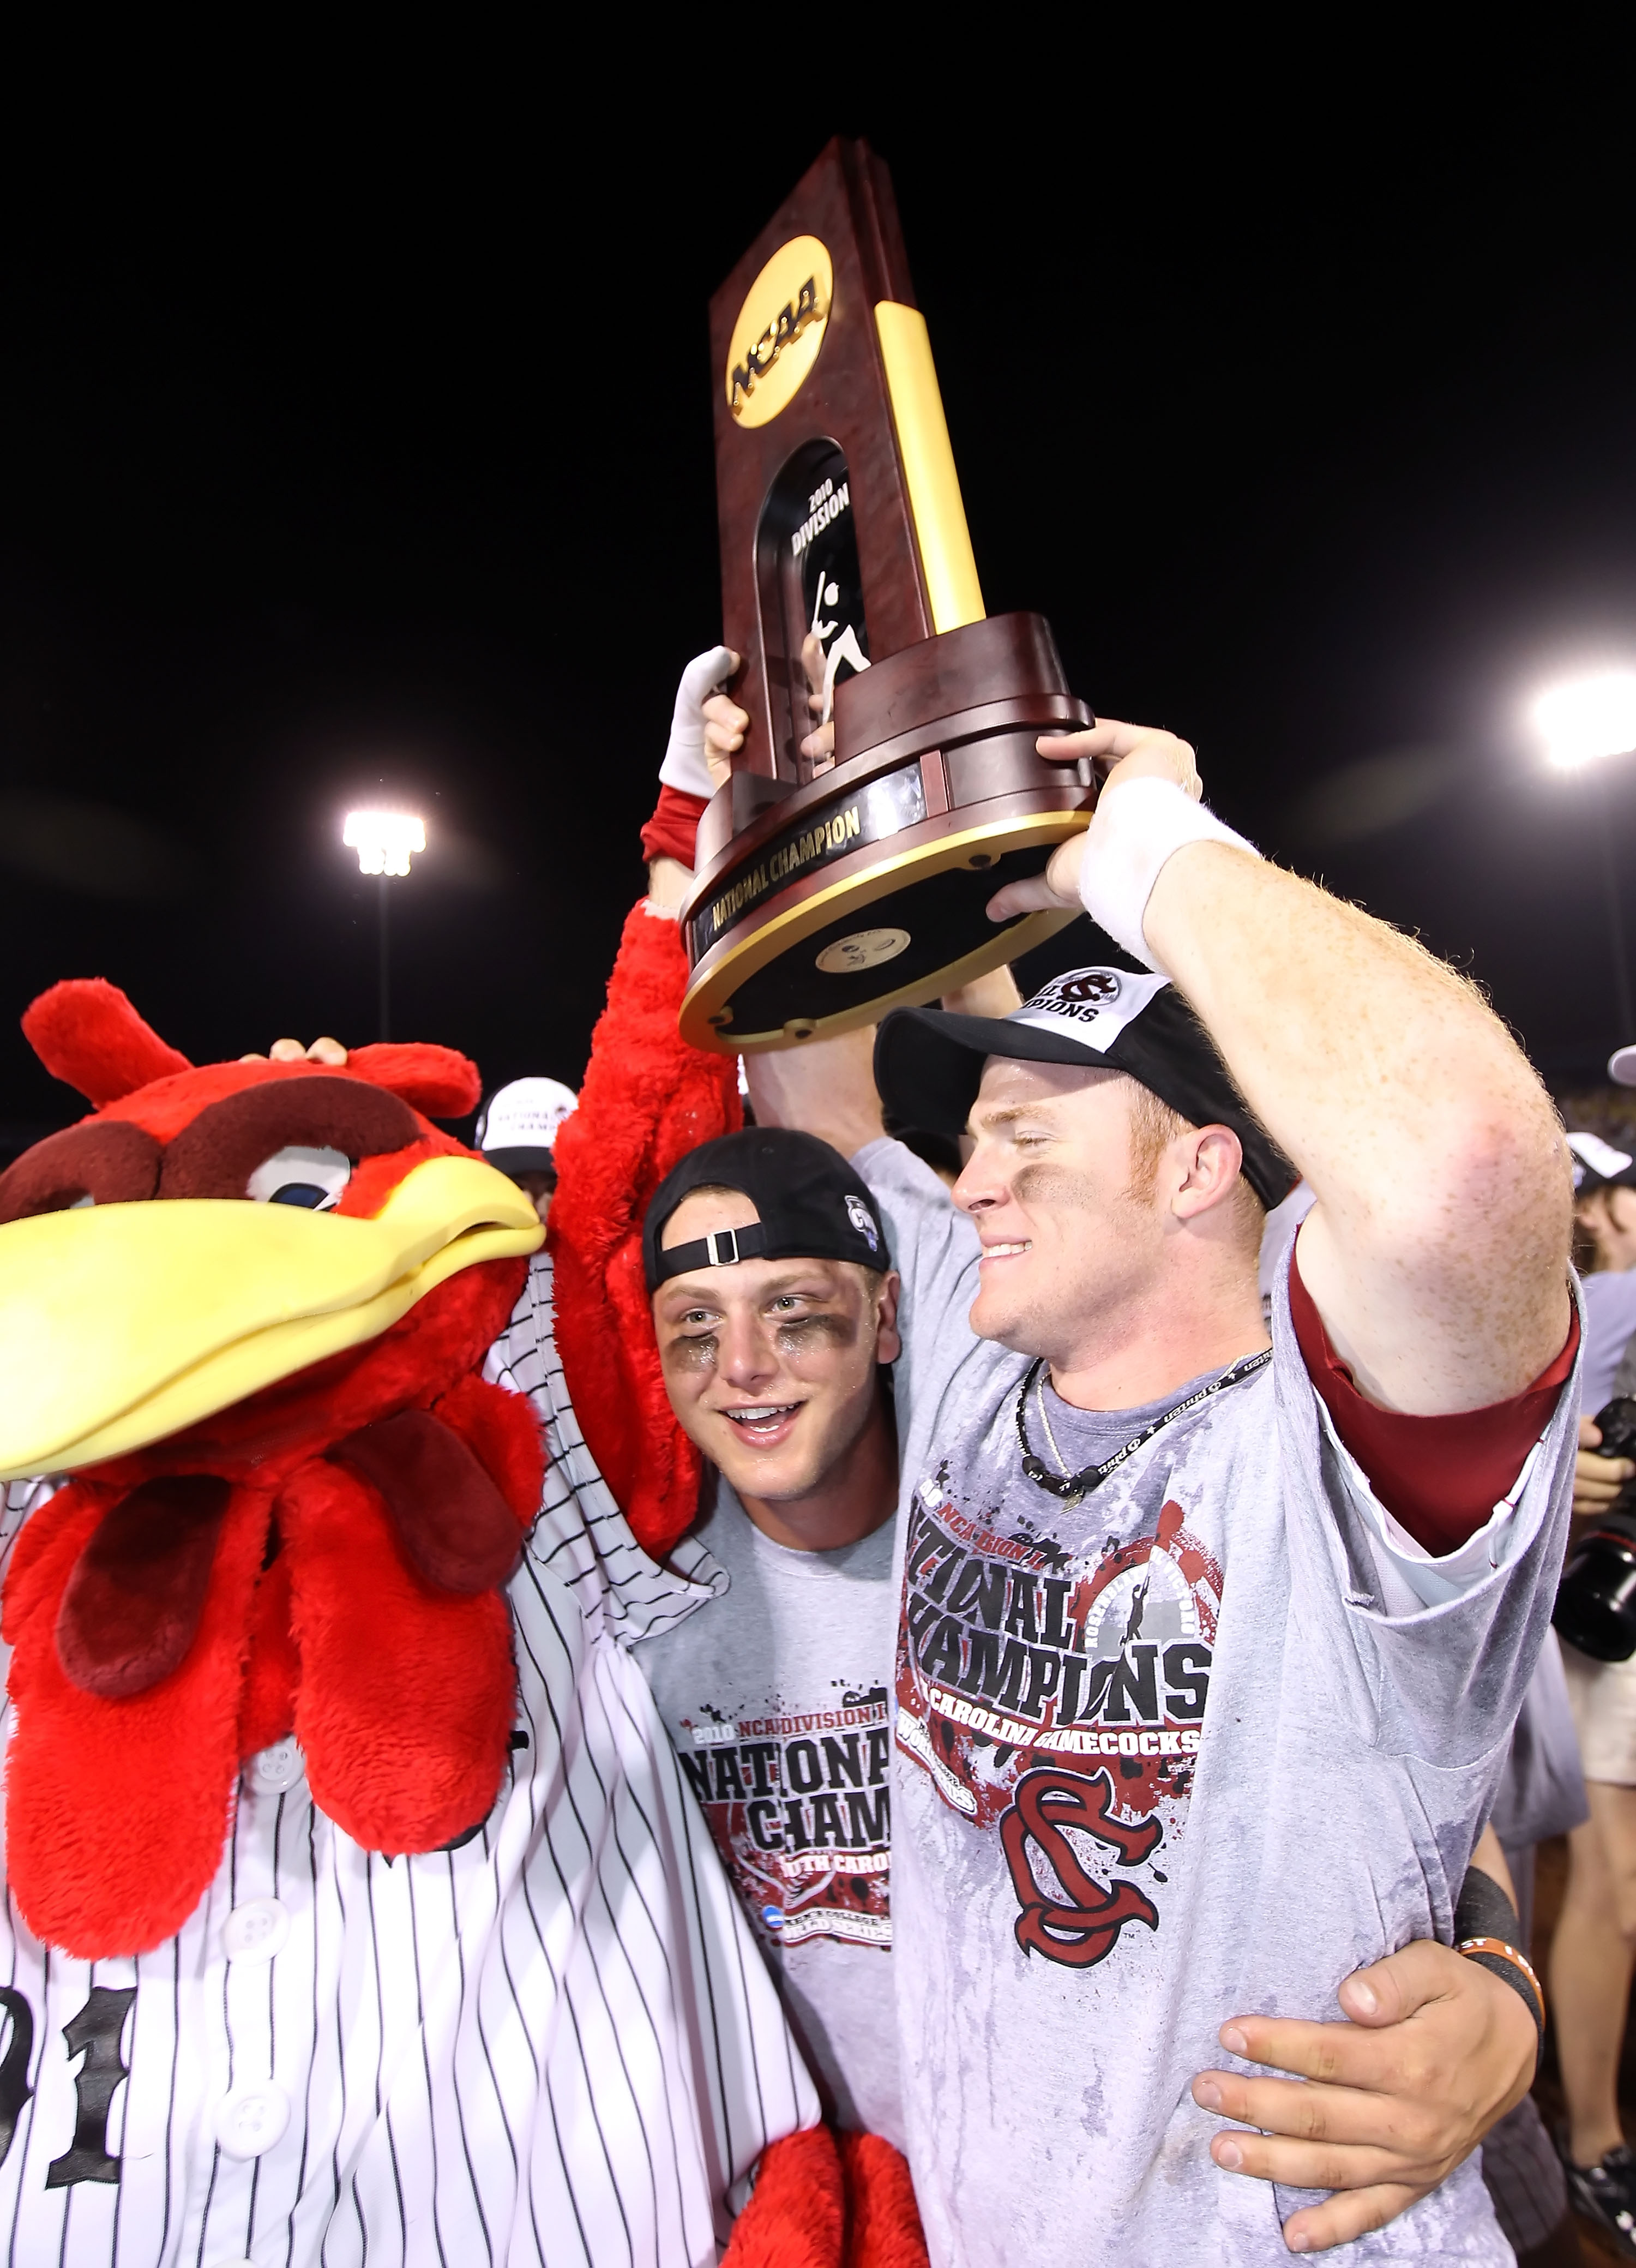 OMAHA, NE - JUNE 29:  The South Carolina Gamecocks celebrate with the championship trophy after defeating the UCLA Bruins in game 2 of the men's 2010 NCAA College Baseball World Series at Rosenblatt Stadium on June 29, 2010 in Omaha, Nebraska. The Gamecoc